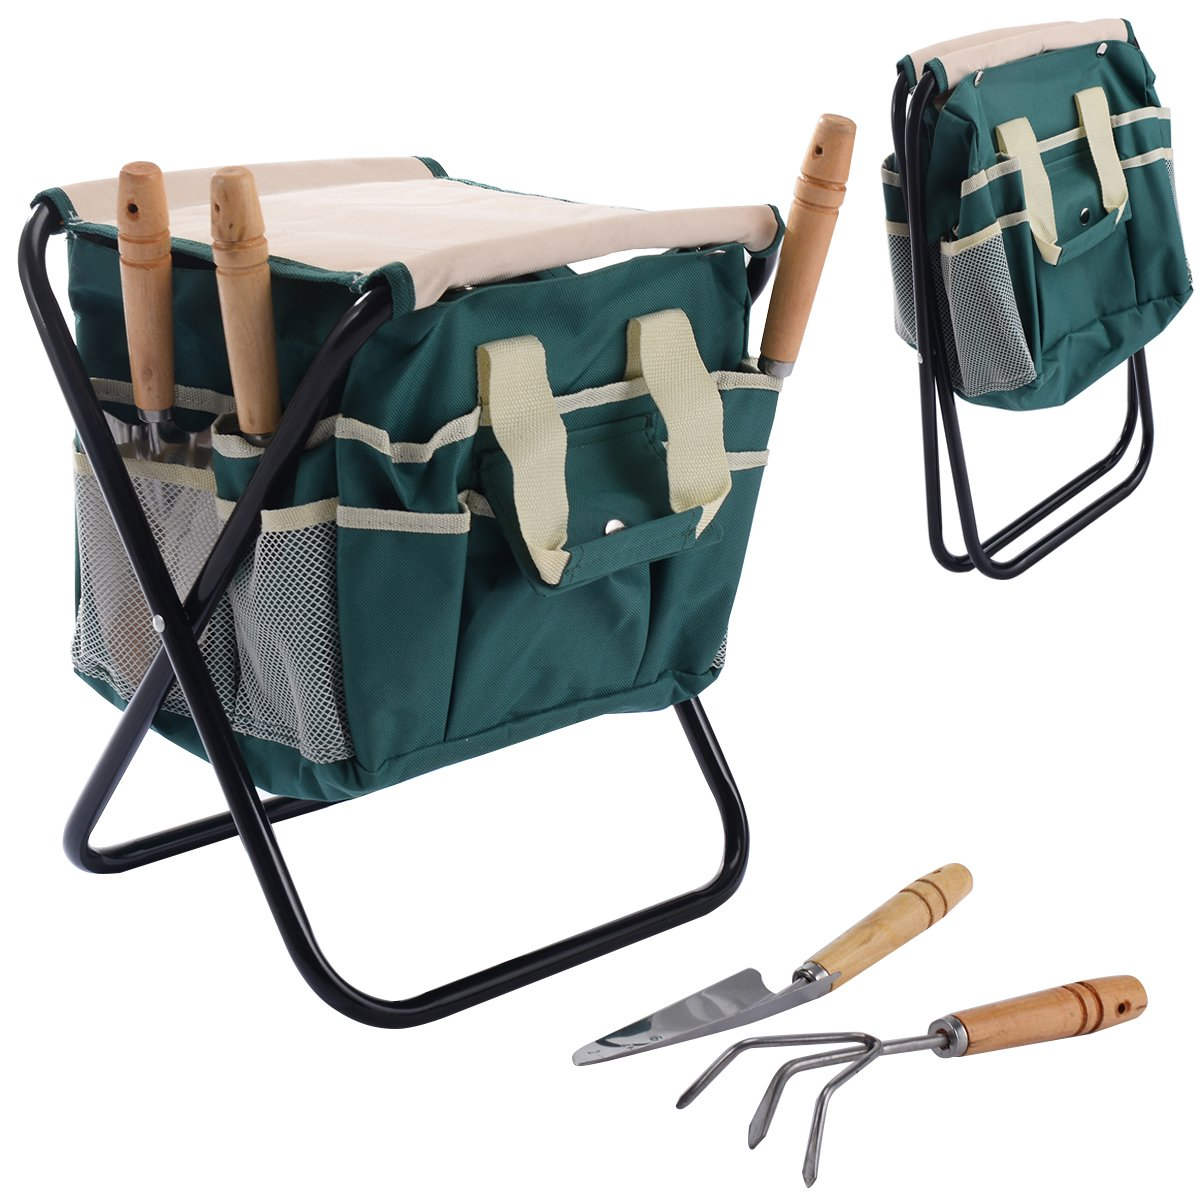 Casart Garden Tool Stool with 5PCS Essential Garden Hand Tools Folding Storage Bag Seat Toolbag Outdoor Green